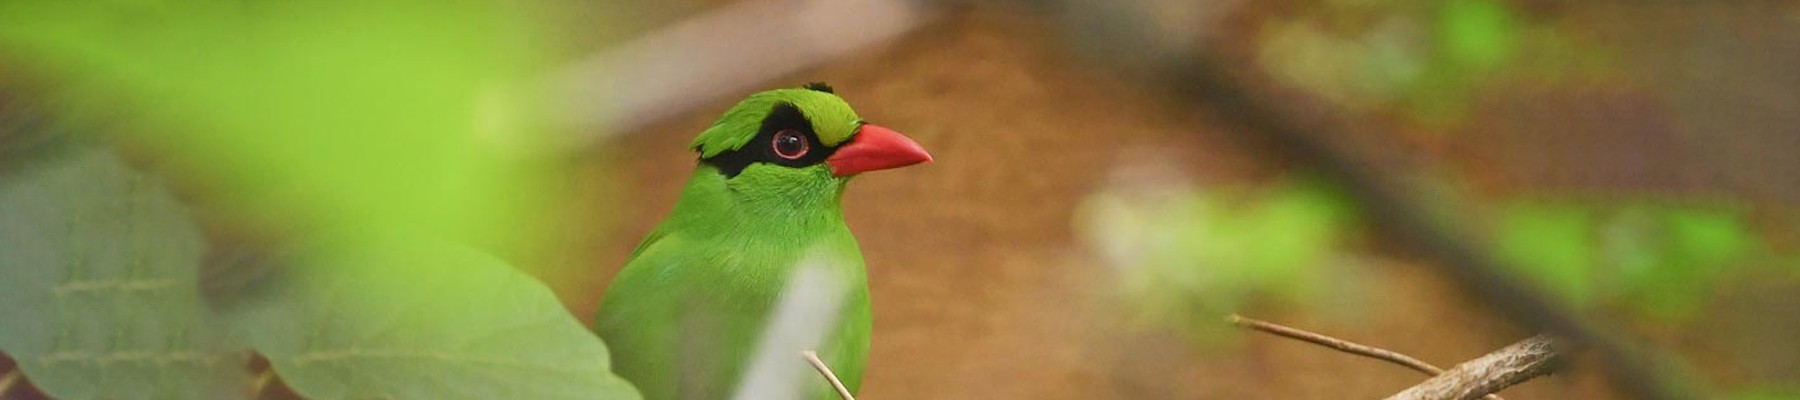 Javan Green Magpie: trapped out of the wild – its future survival depends on captive breeding programmes © Chester Zoo